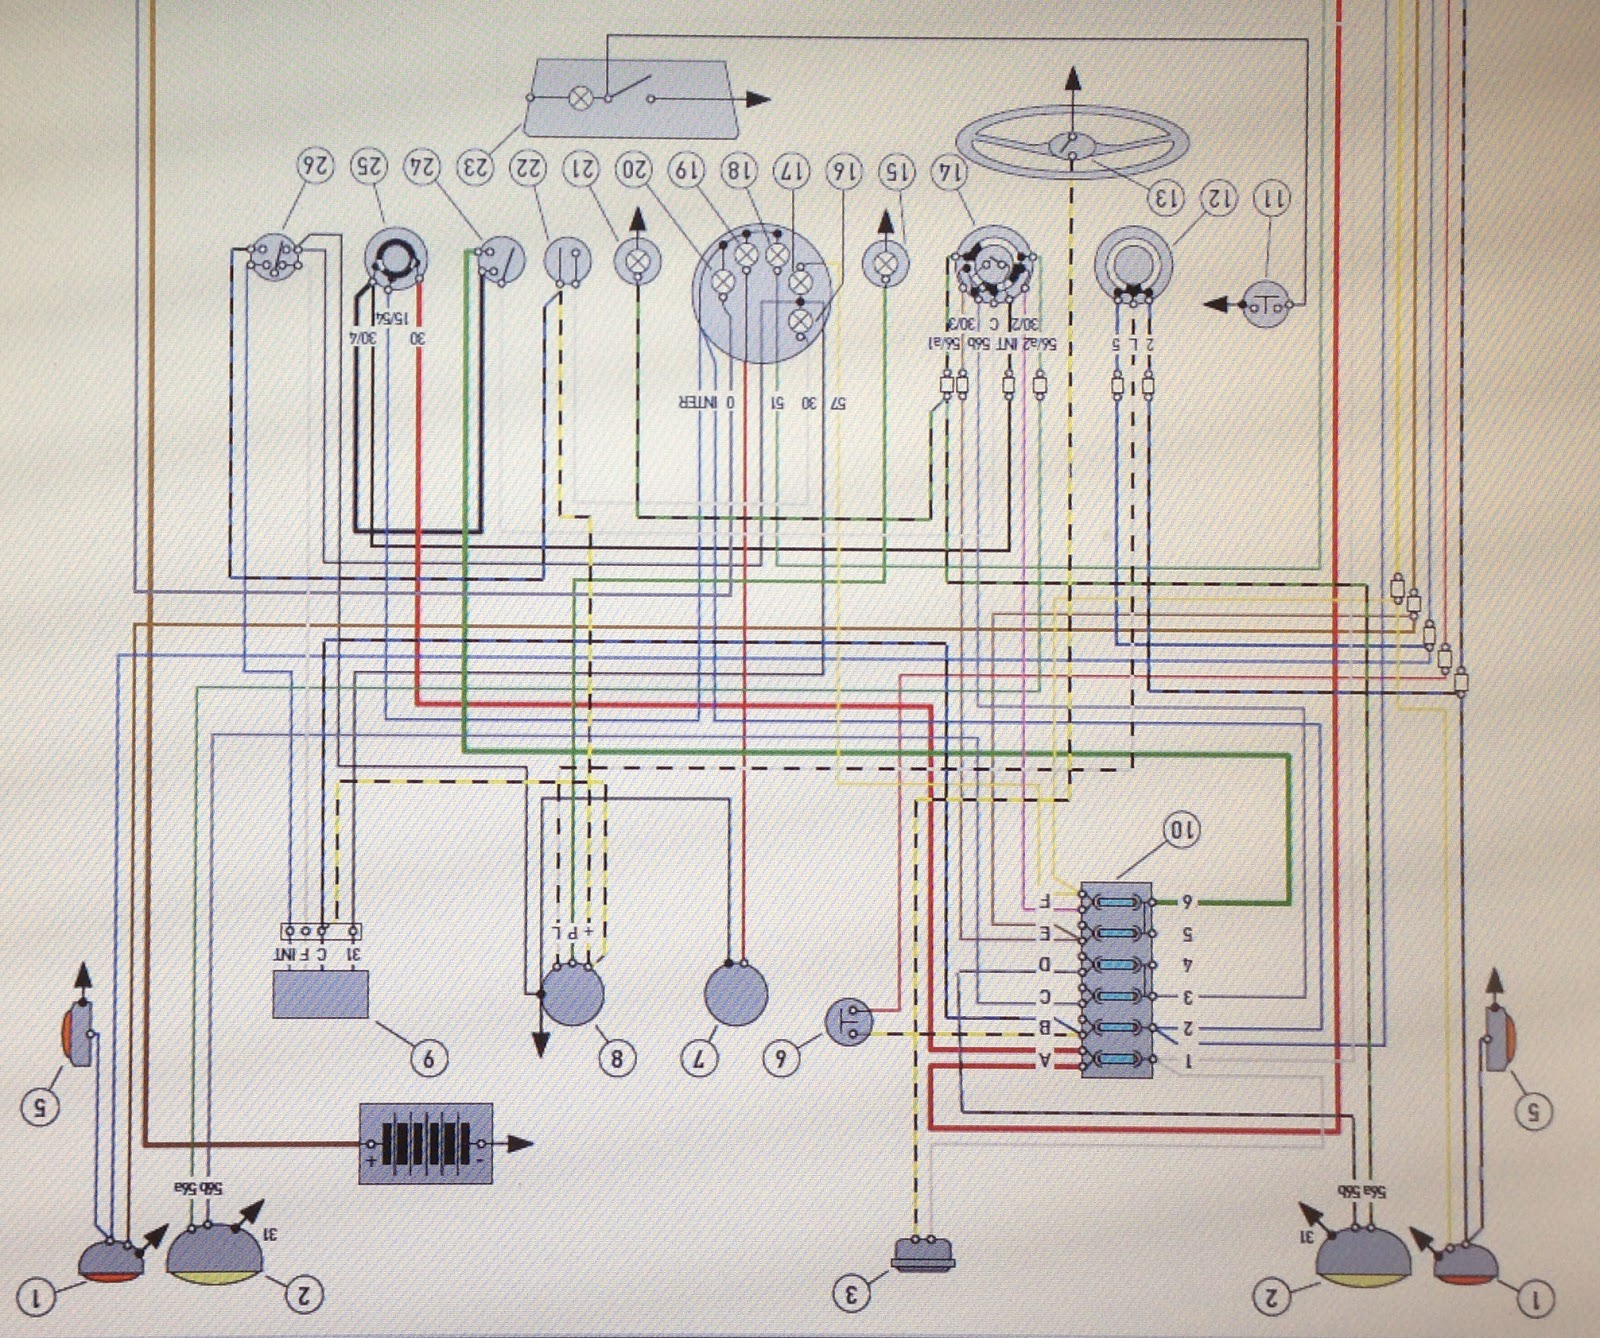 fiat 500 wiring diagram wiring diagram third level rh 2 7 20 jacobwinterstein com fiat 500 [ 1600 x 1338 Pixel ]